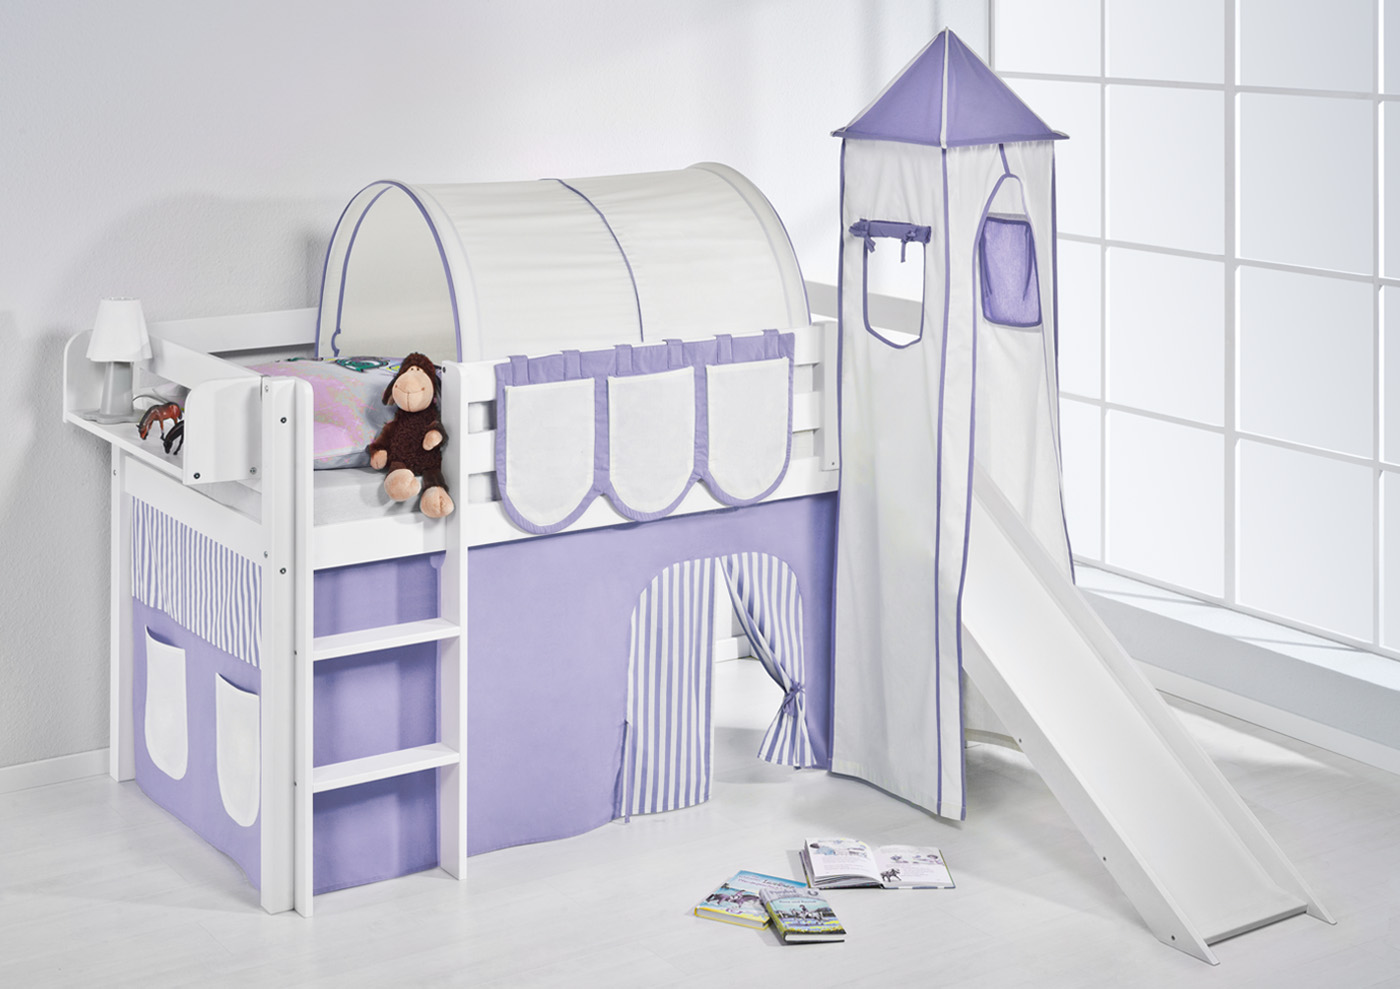 spielbett hochbett kinderbett jelle weiss mit turm rutsche vorhang lilokids ebay. Black Bedroom Furniture Sets. Home Design Ideas